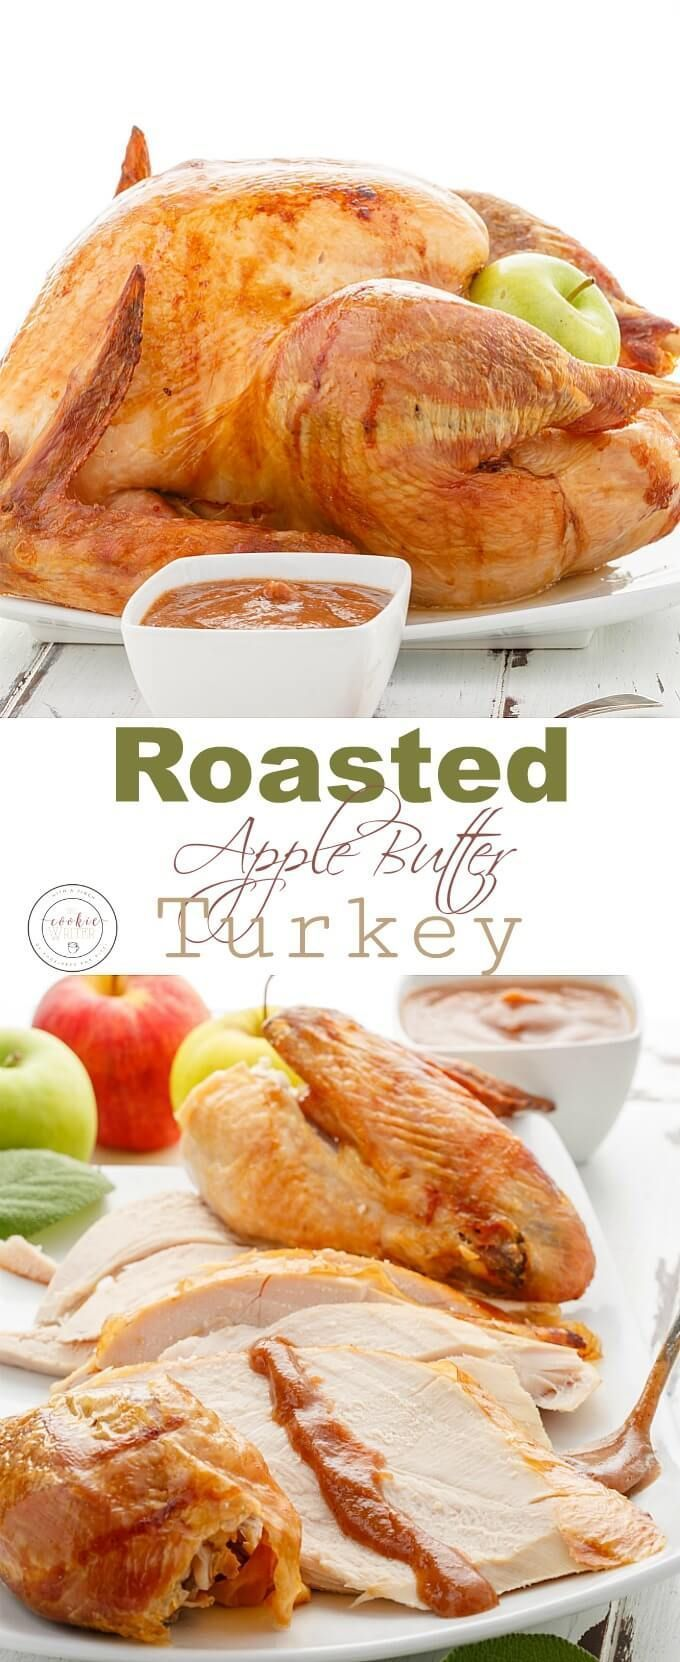 Roasted Apple Butter Turkey with Turkey Bacon Scalloped Potatoes | http://thecookiewriter.com | @thecookiewriter | #sponsored | Canadian Thanksgiving will be spectacular this year with Canadian Turkey! The crispiest whole turkey imaginable with a simple brining method, followed by the dry method. It makes all the difference! Roasted, juicy, gluten-free, and served with apple butter instead of gravy, you will surely have minimal leftovers! #turkey #CanadianThanksgiving #Easter #christmas